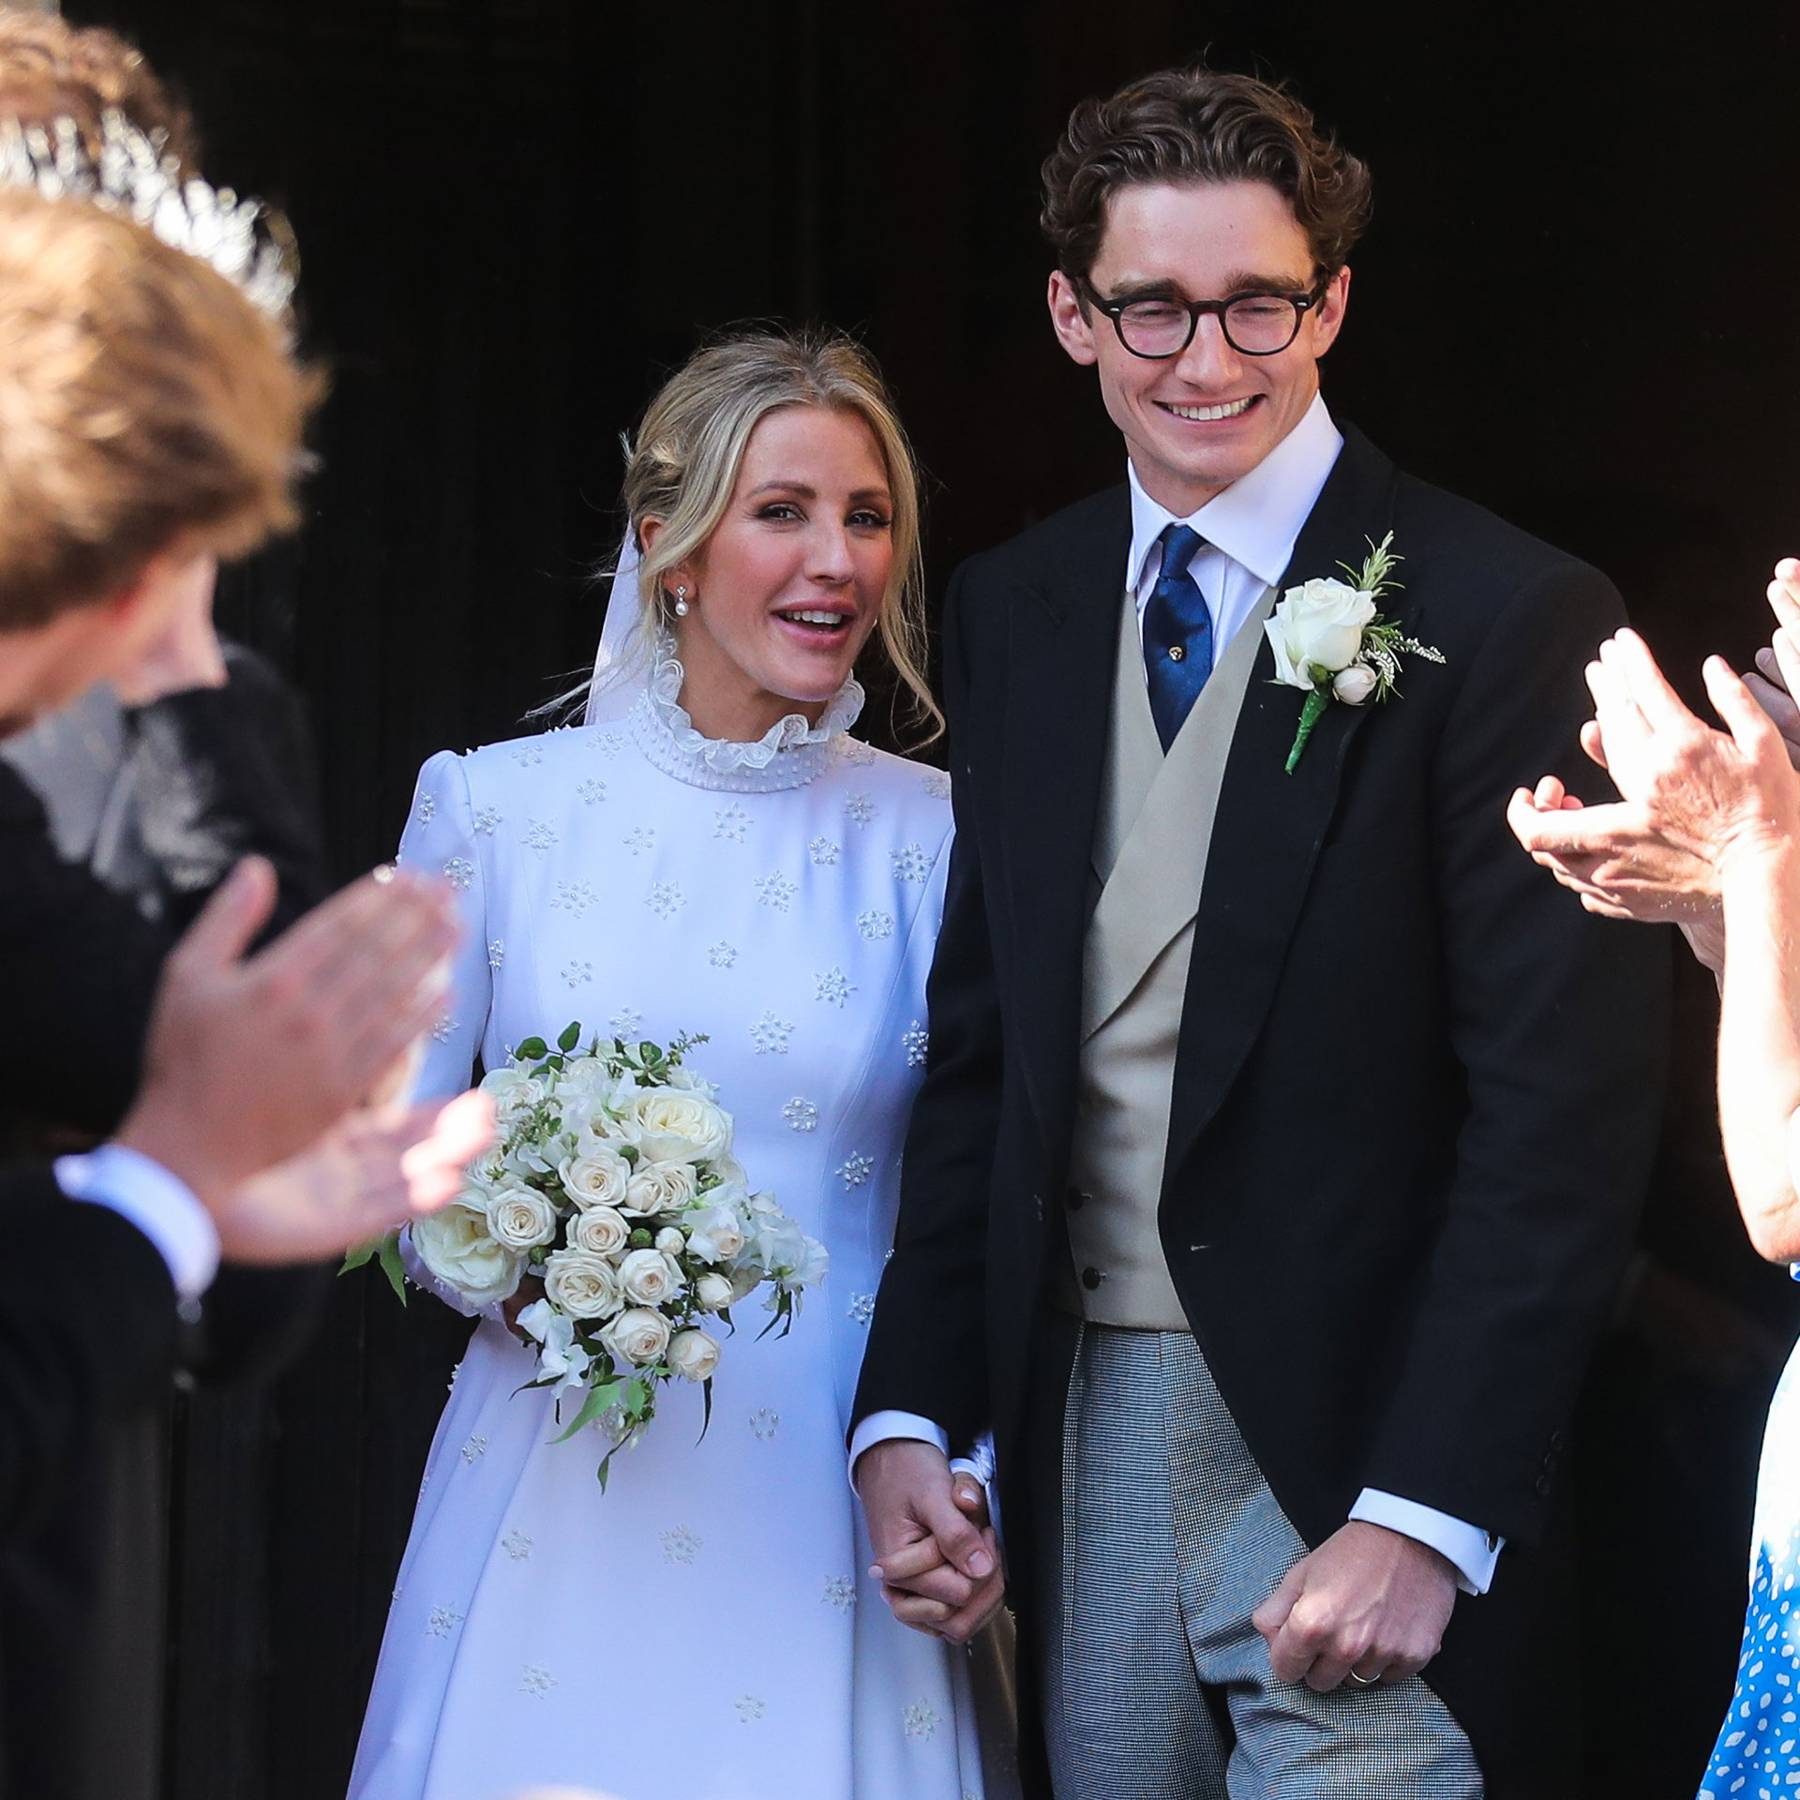 A look at Ellie Goulding's (second) wedding dress